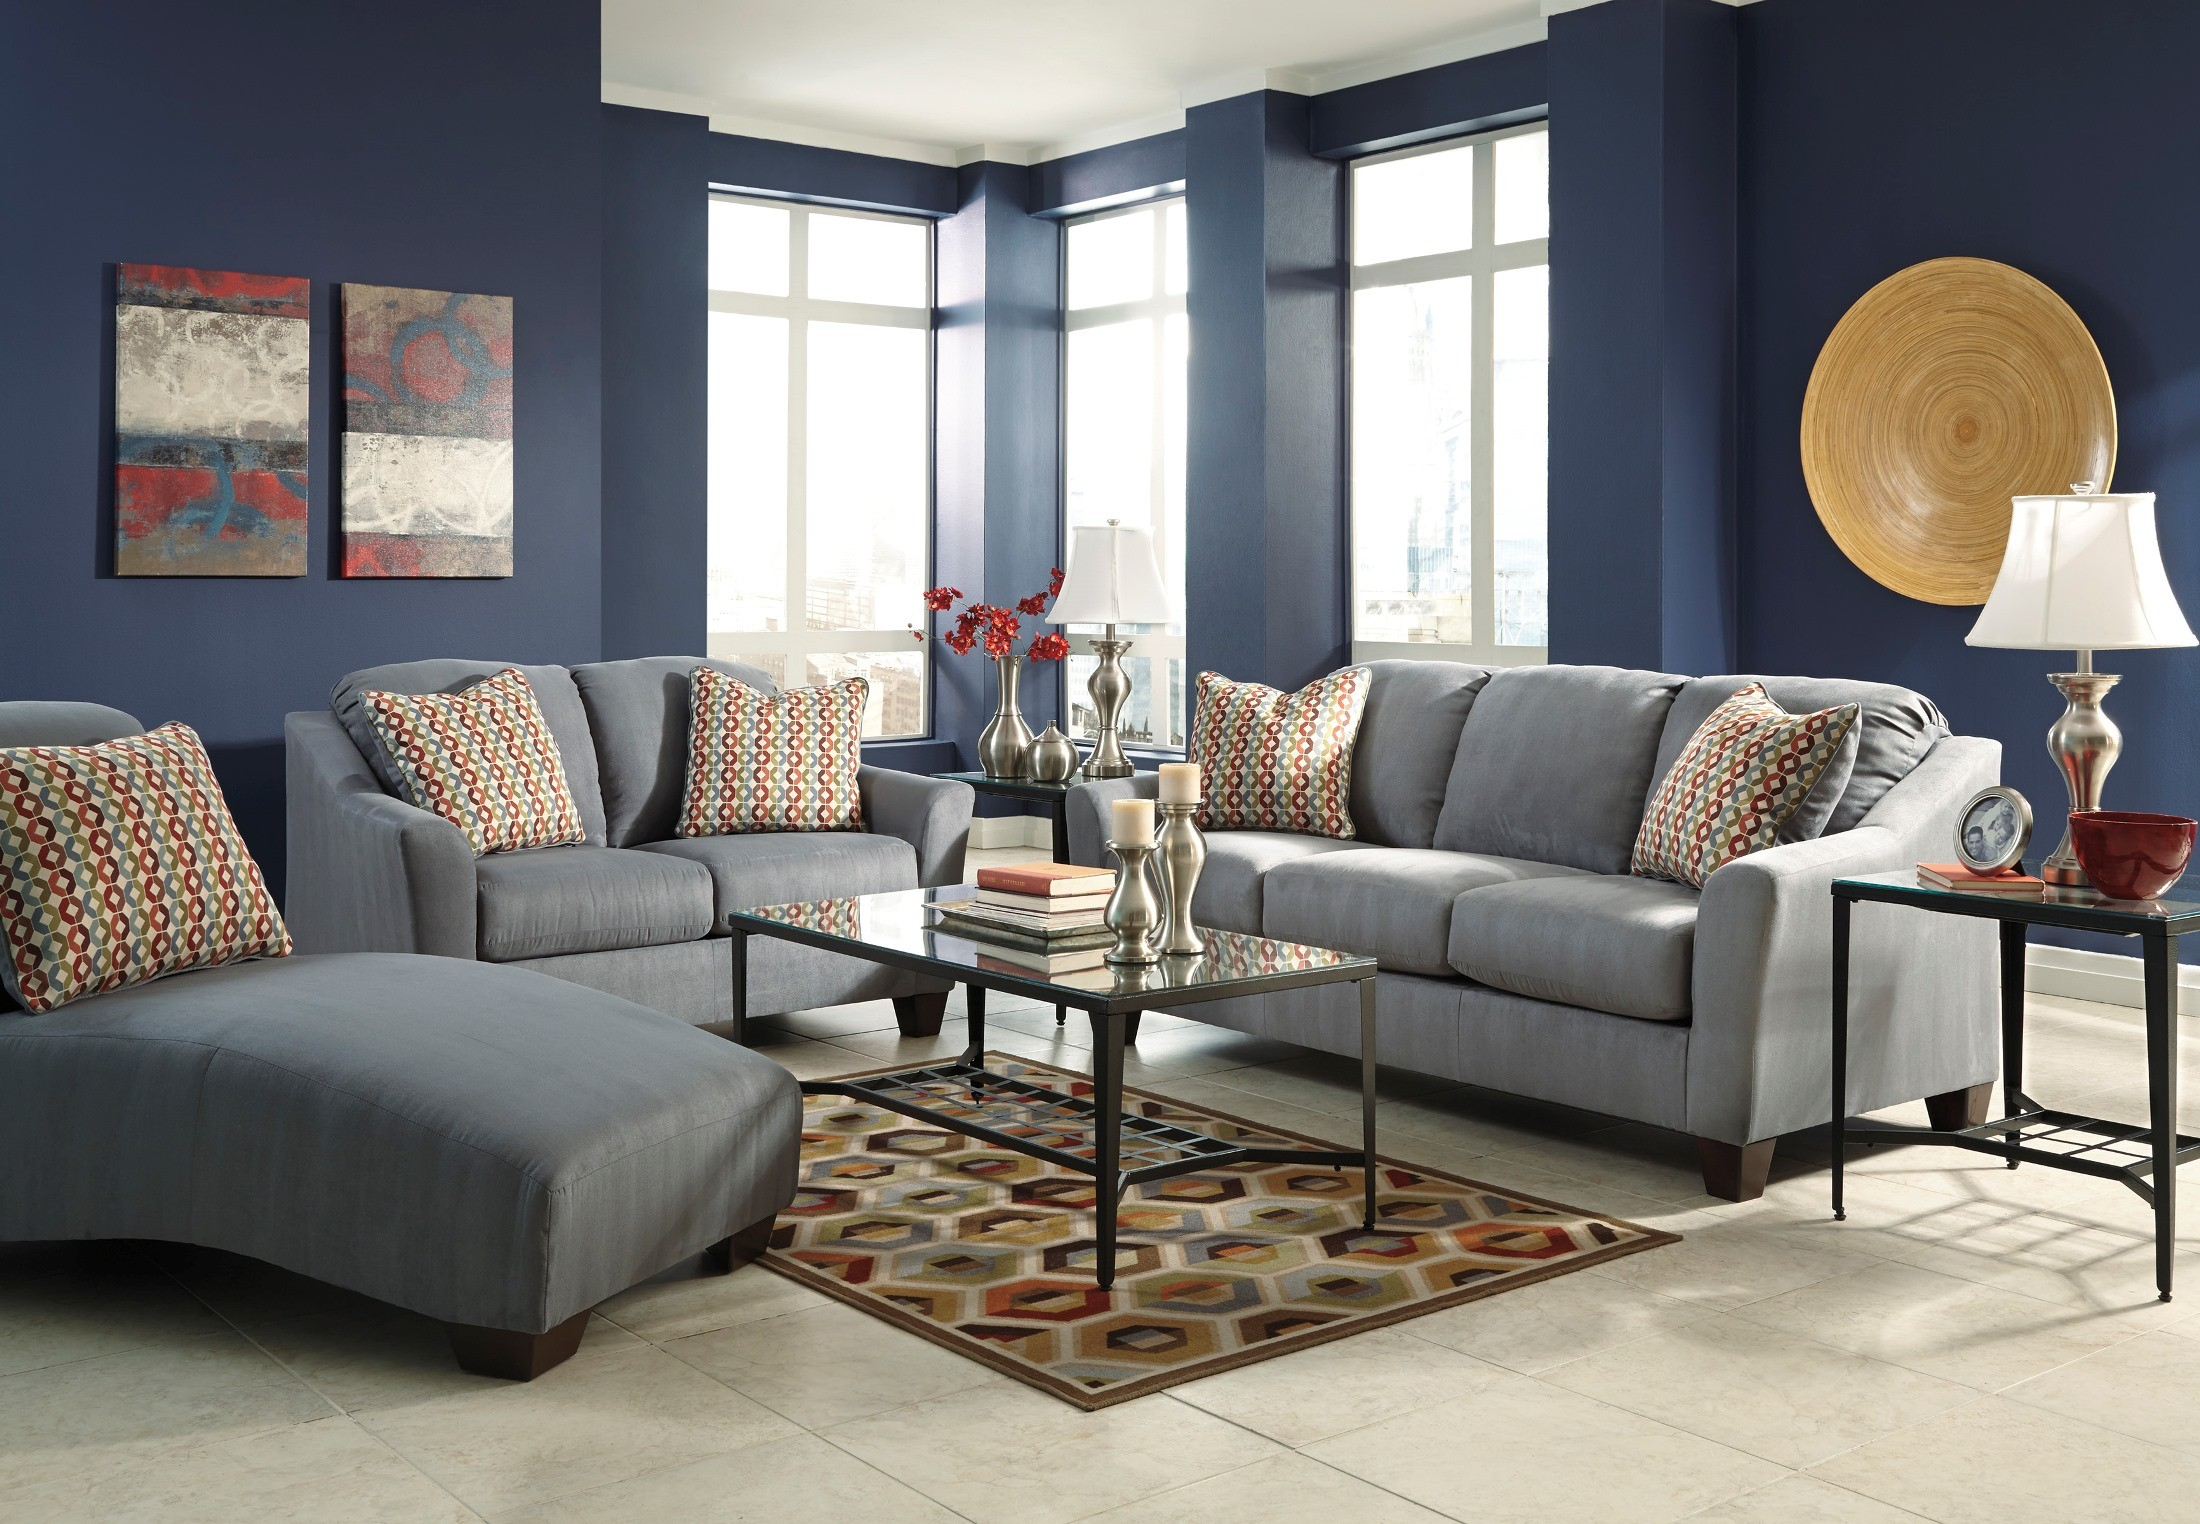 Hannin Lagoon Living Room Set From Ashley 95802 38 35